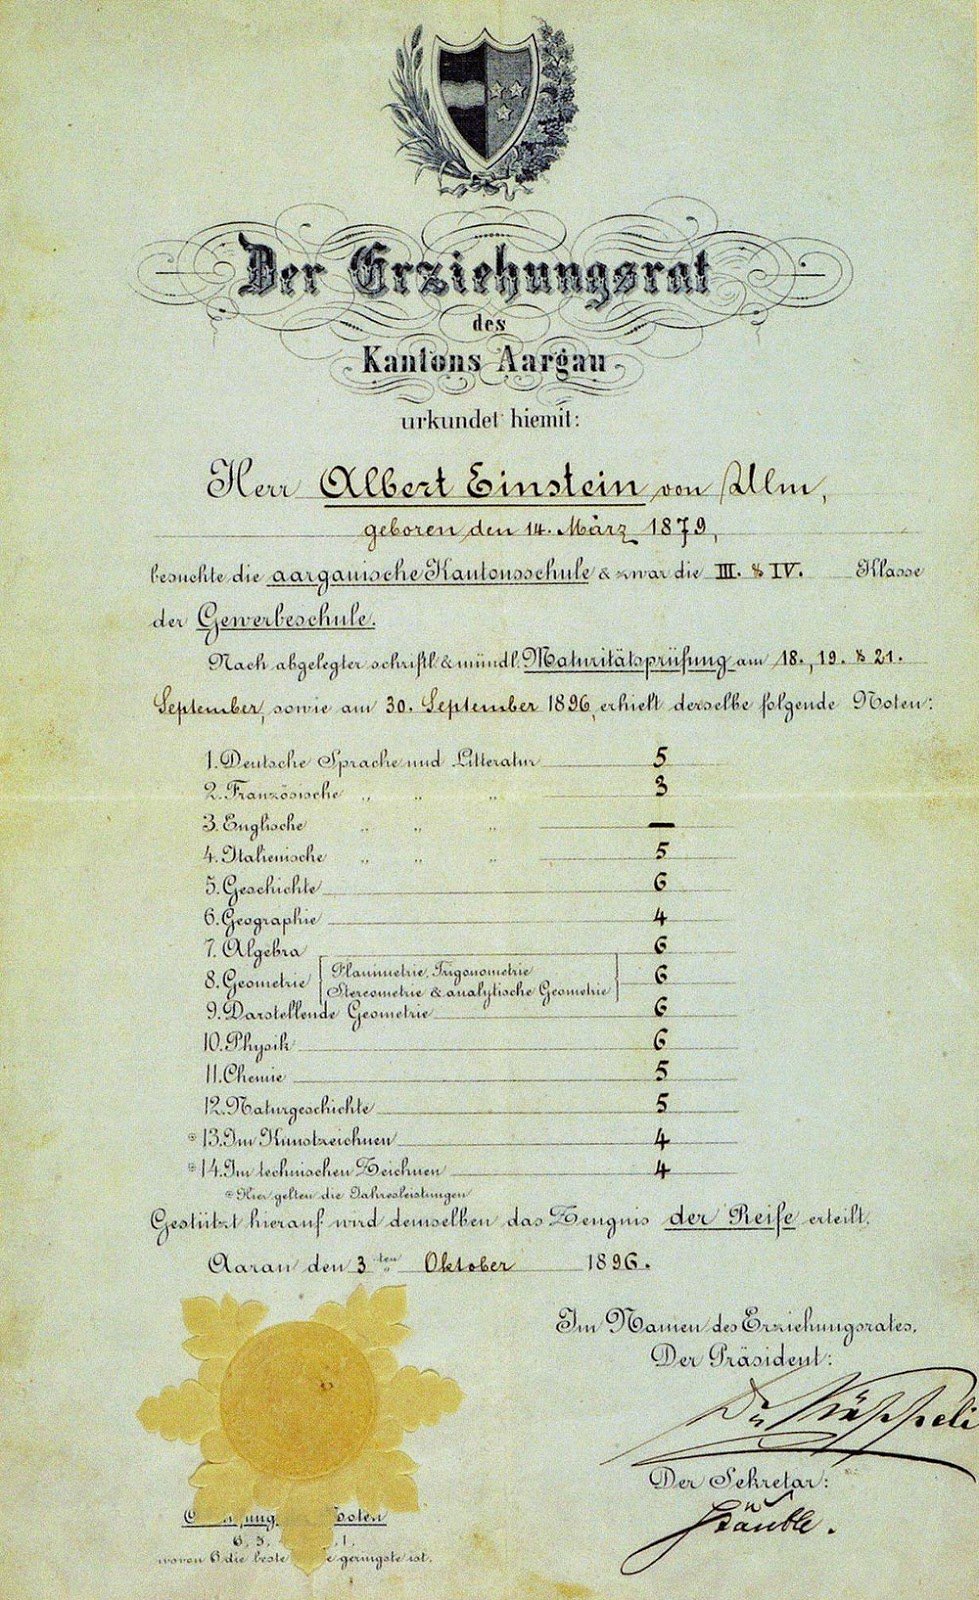 Albert Einstein's matriculation certificate, aged 17, 1896. It's a myth that Einstein was bad at math.